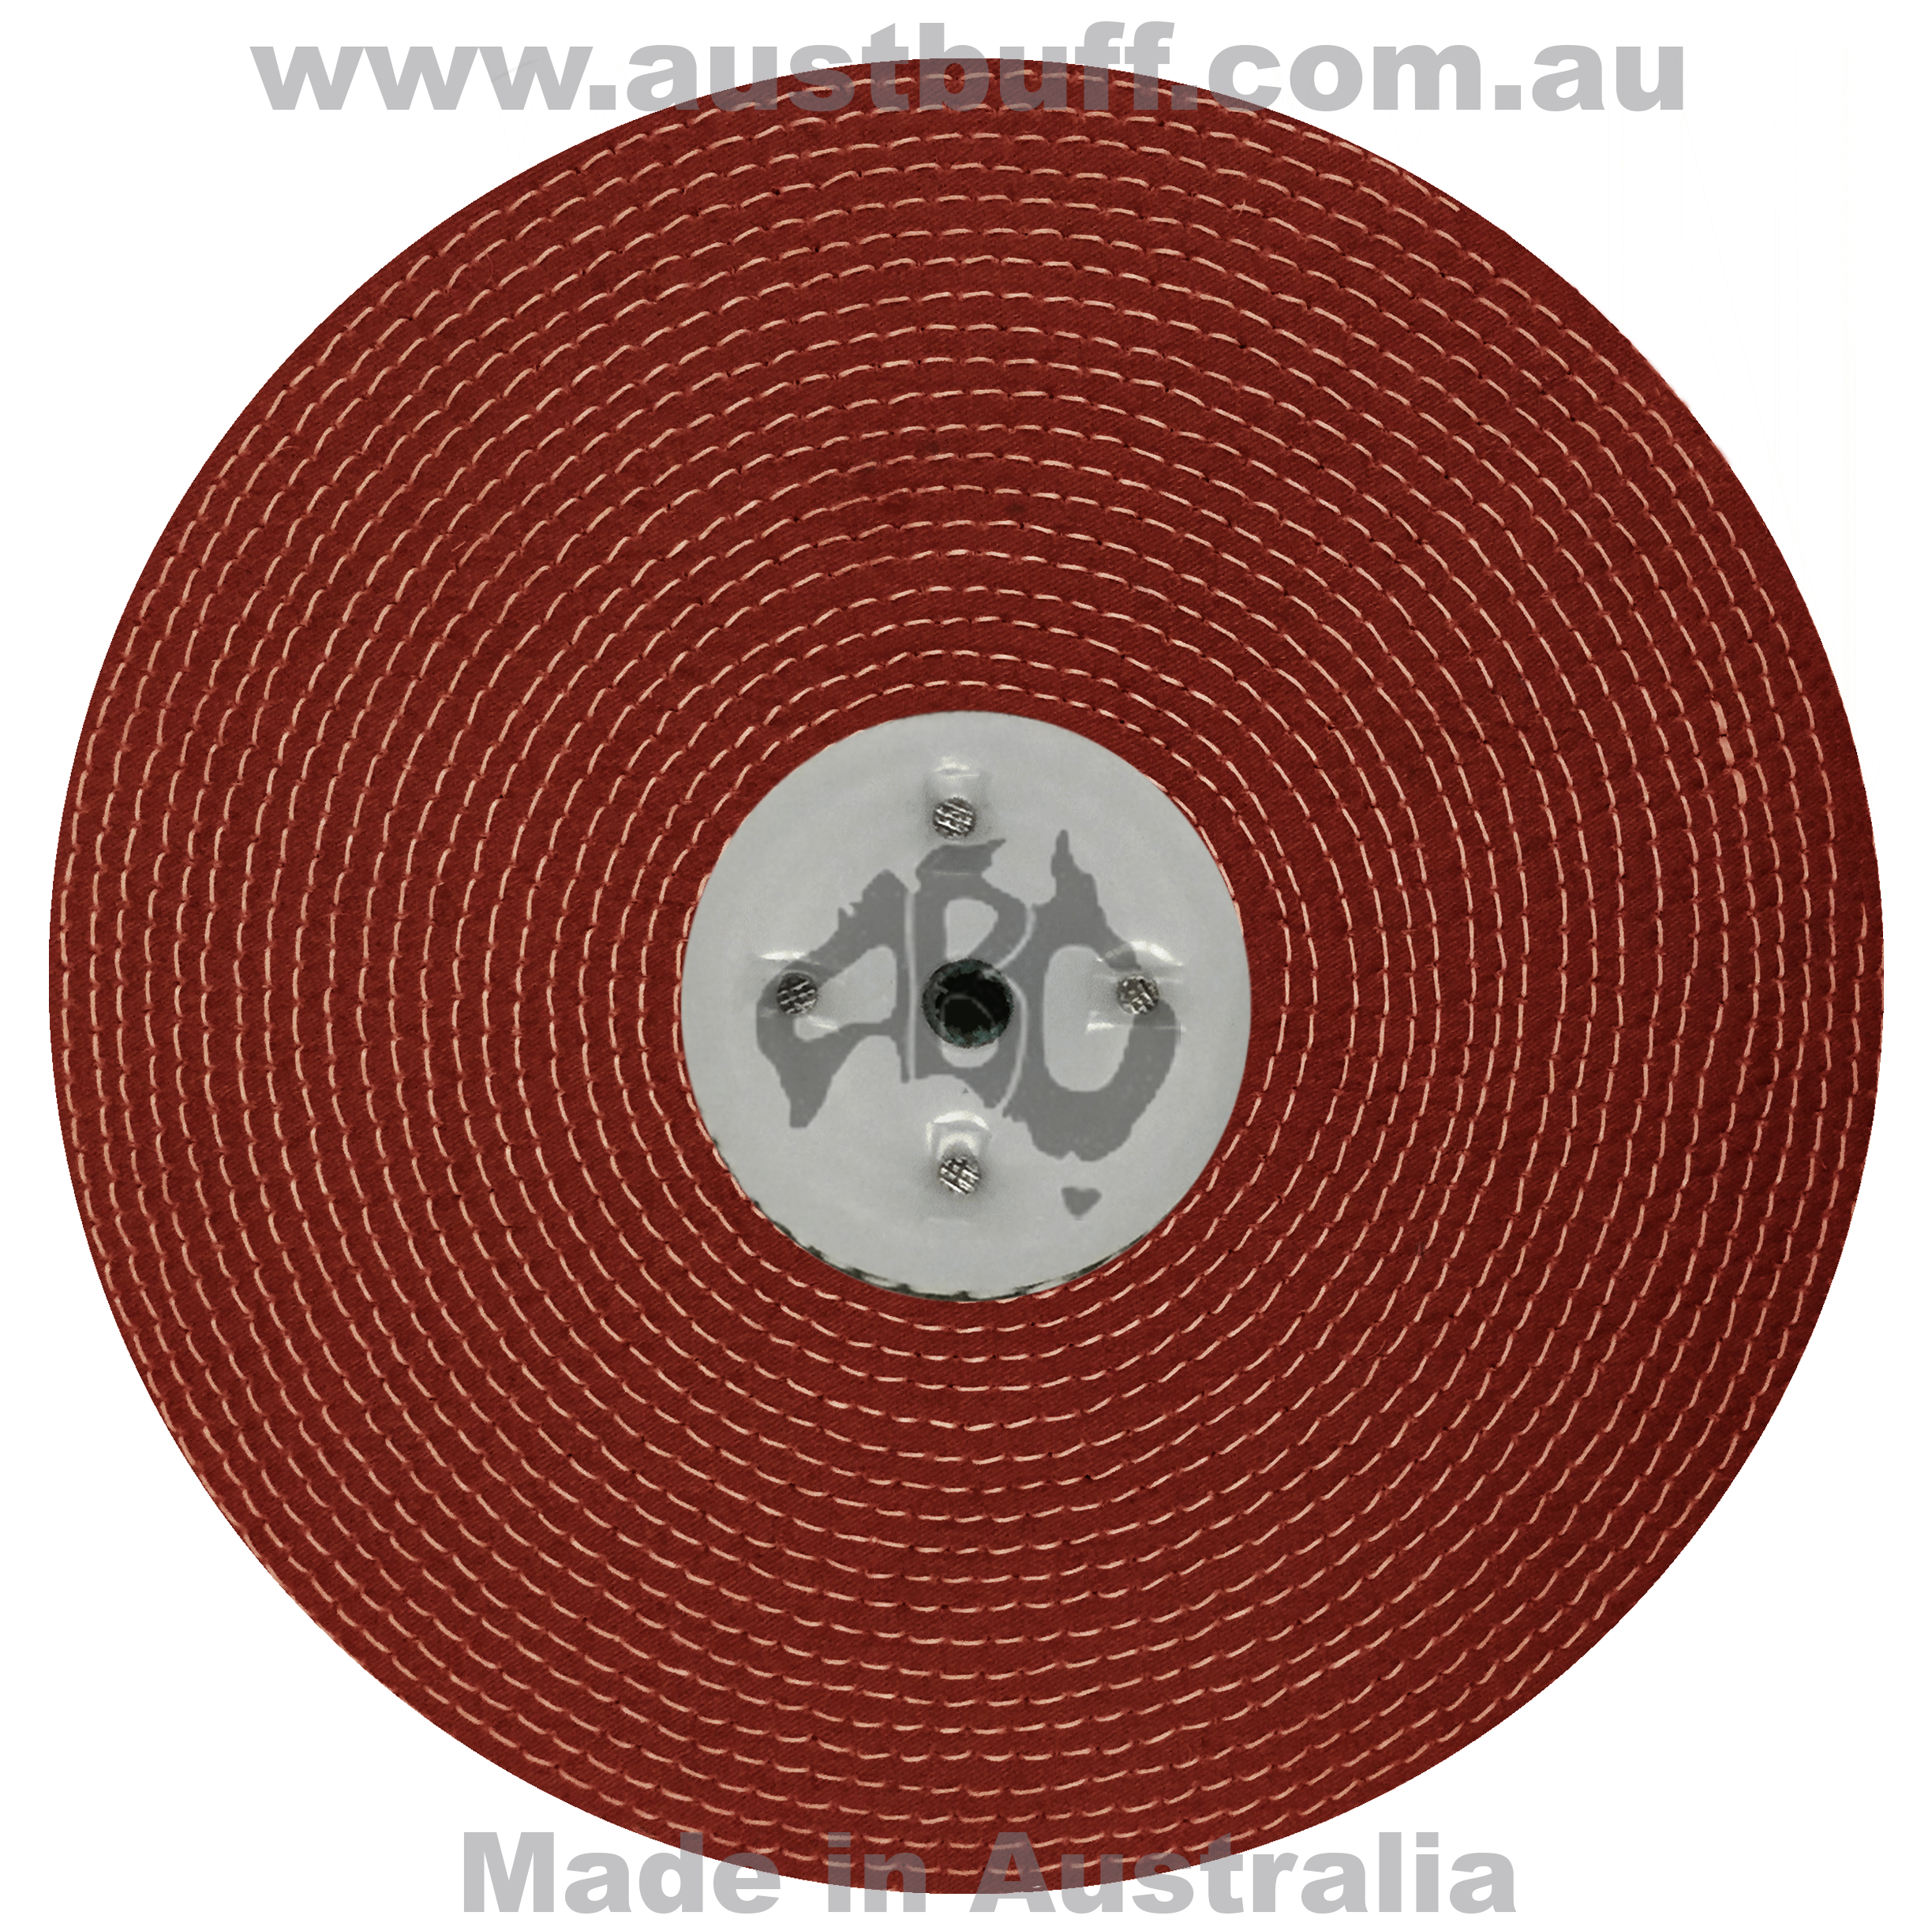 IT-sisal red